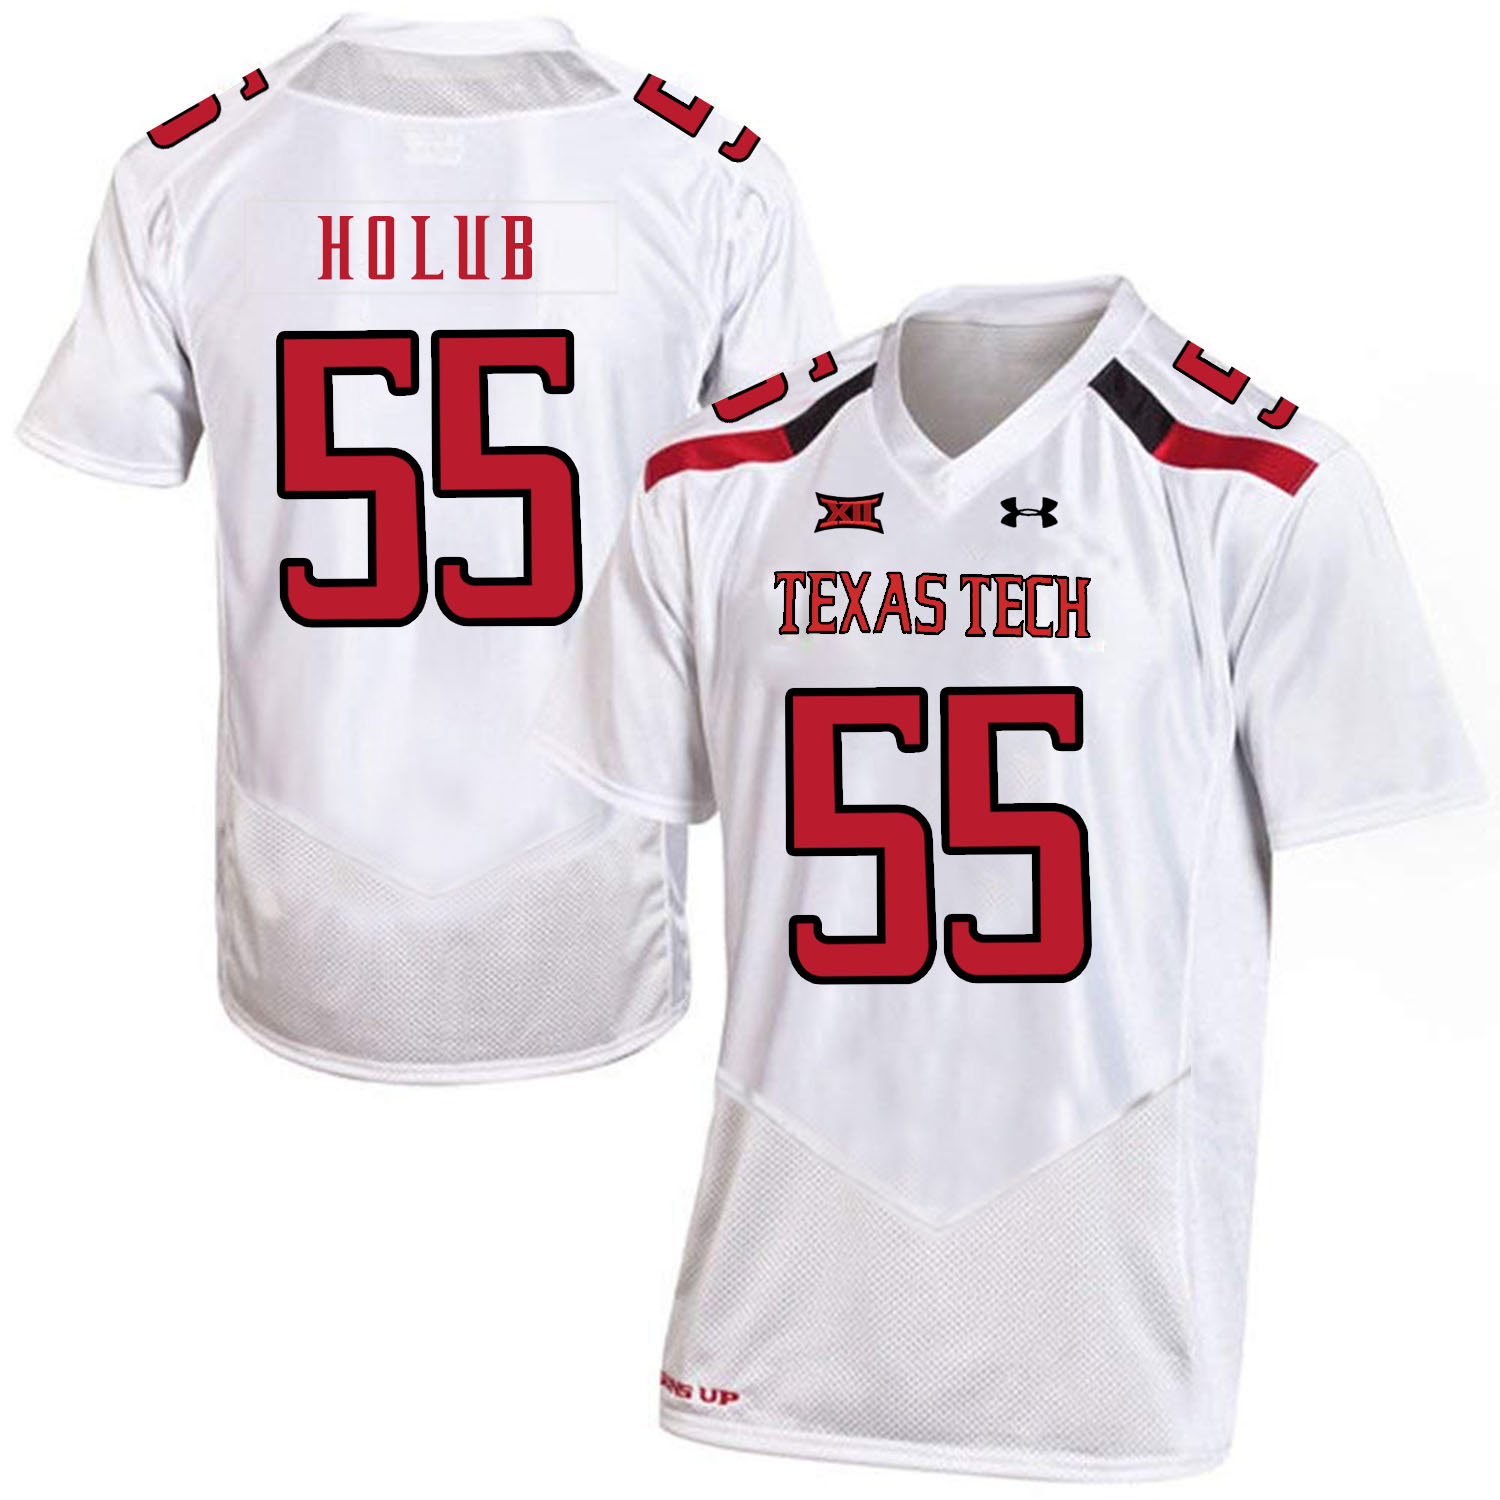 Texas Tech Red Raiders 55 E.J. Holub White College Football Jersey